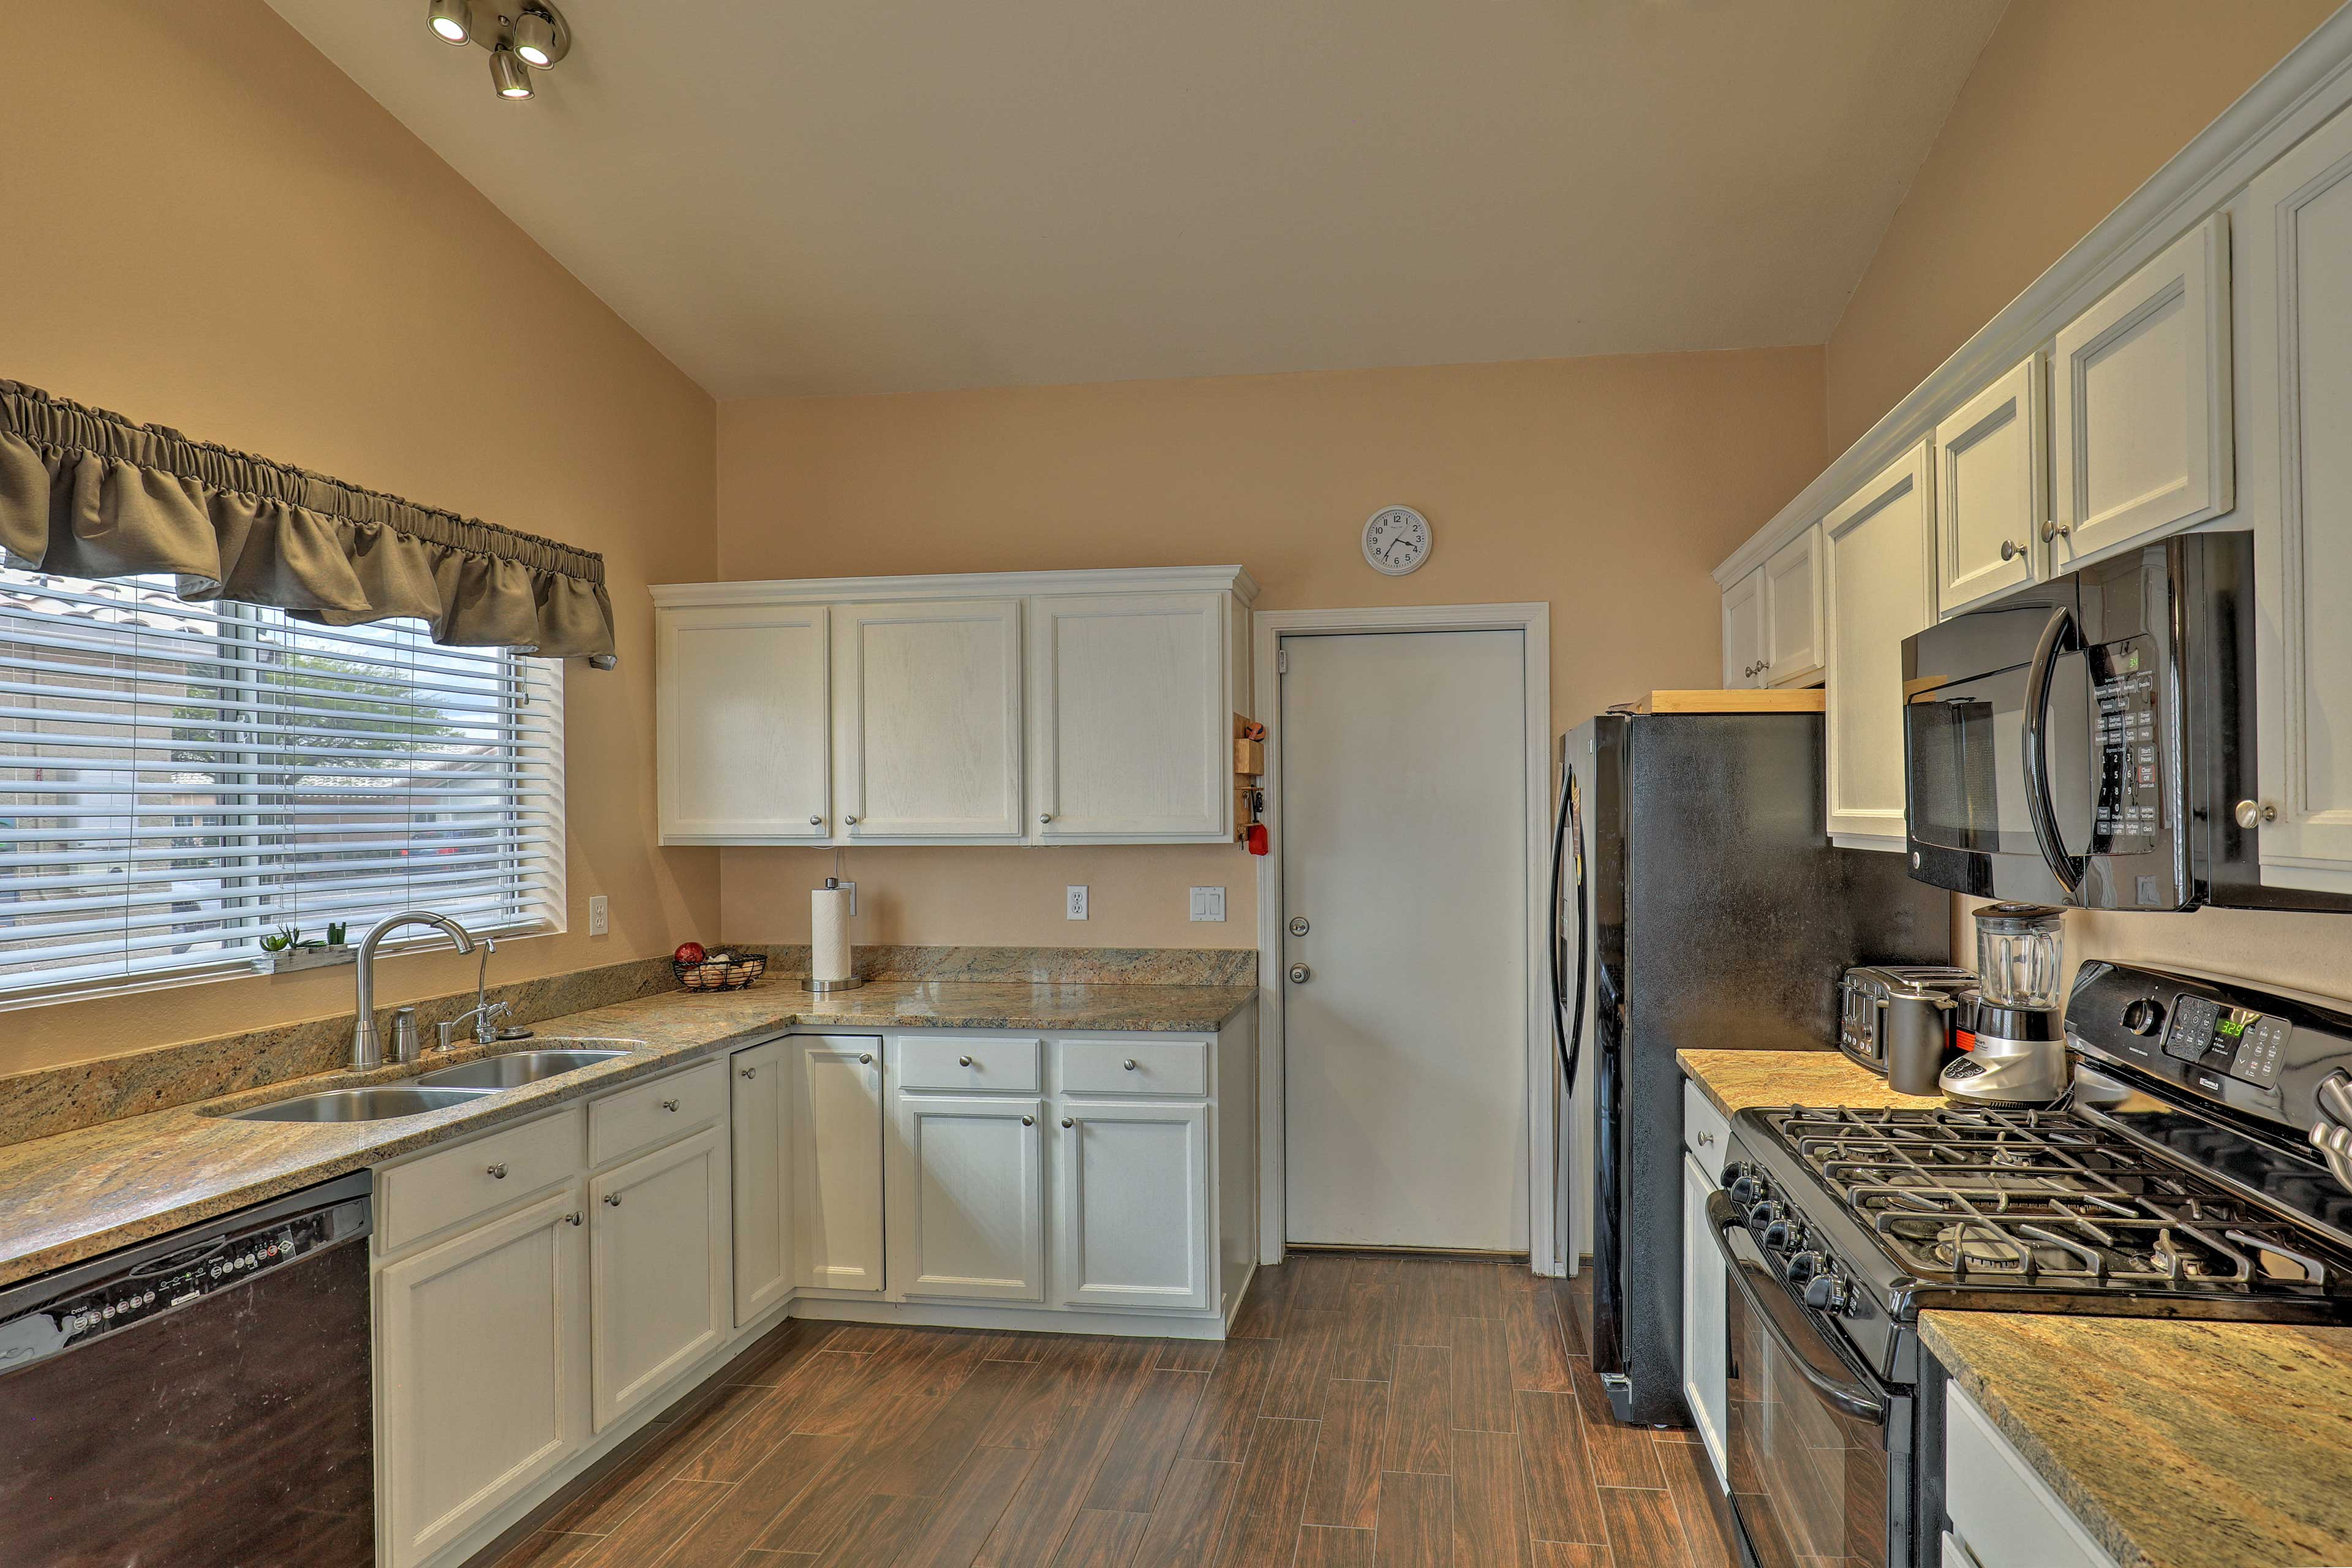 The kitchen offers ample counter space for all your cooking needs.